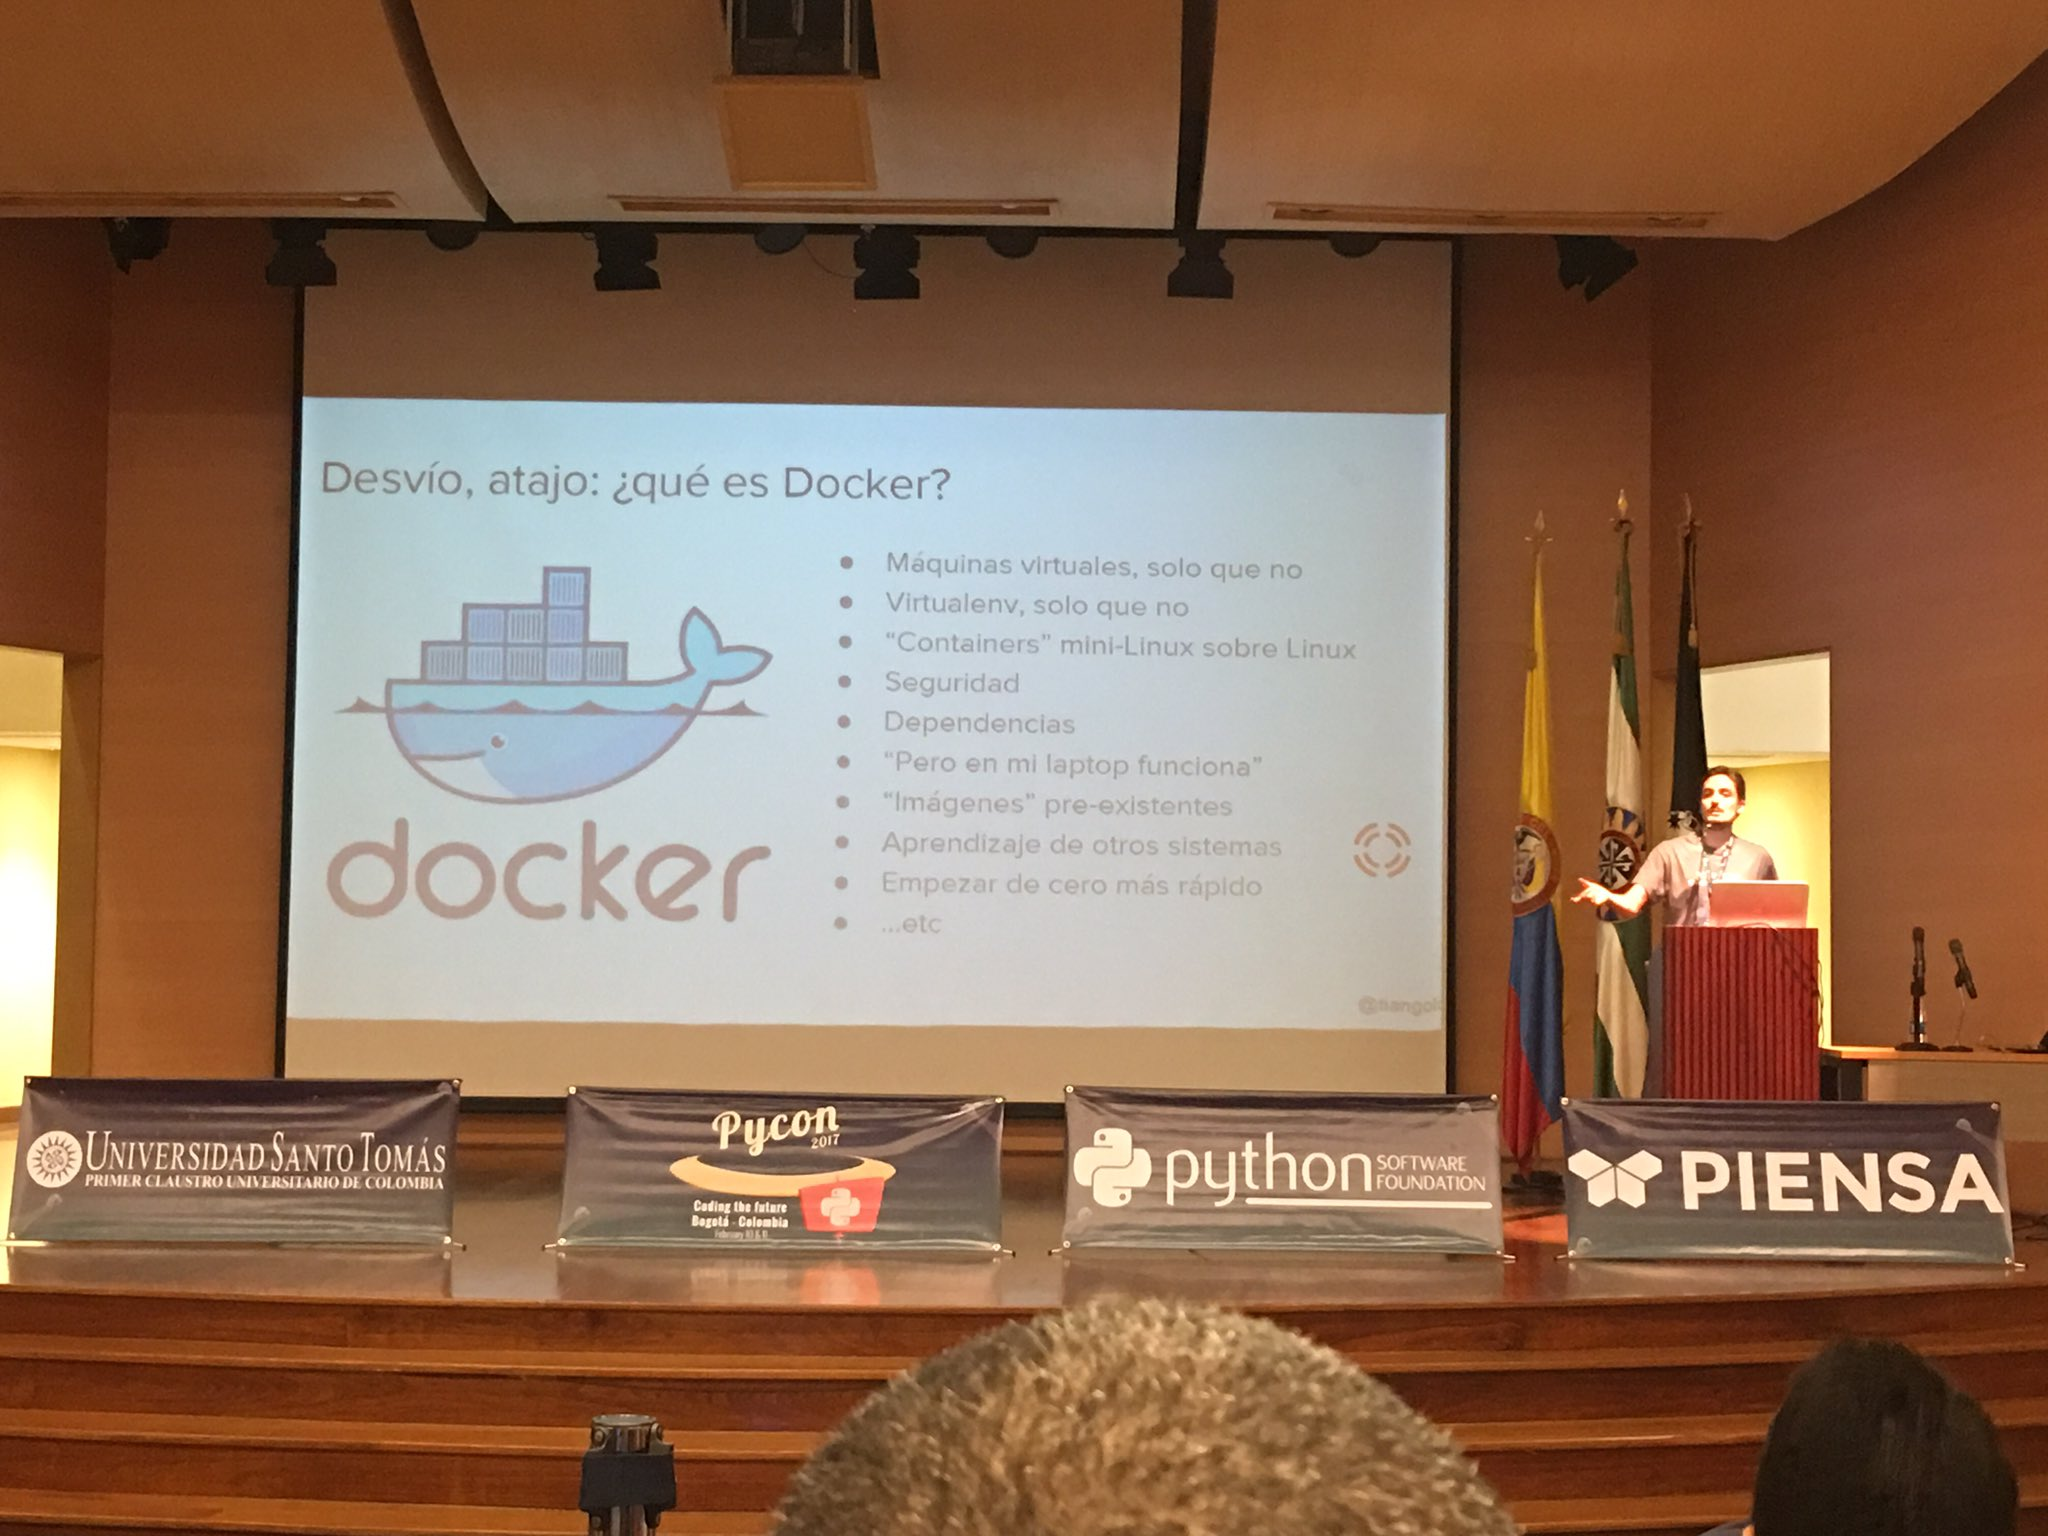 "A esta hora aprendiendo con Sebastián Ramírez ""introduction to Celery for distributed Python, using Docker"" en #PyConCo2017 @pyconcolombia https://t.co/GqpJOVFzMW"